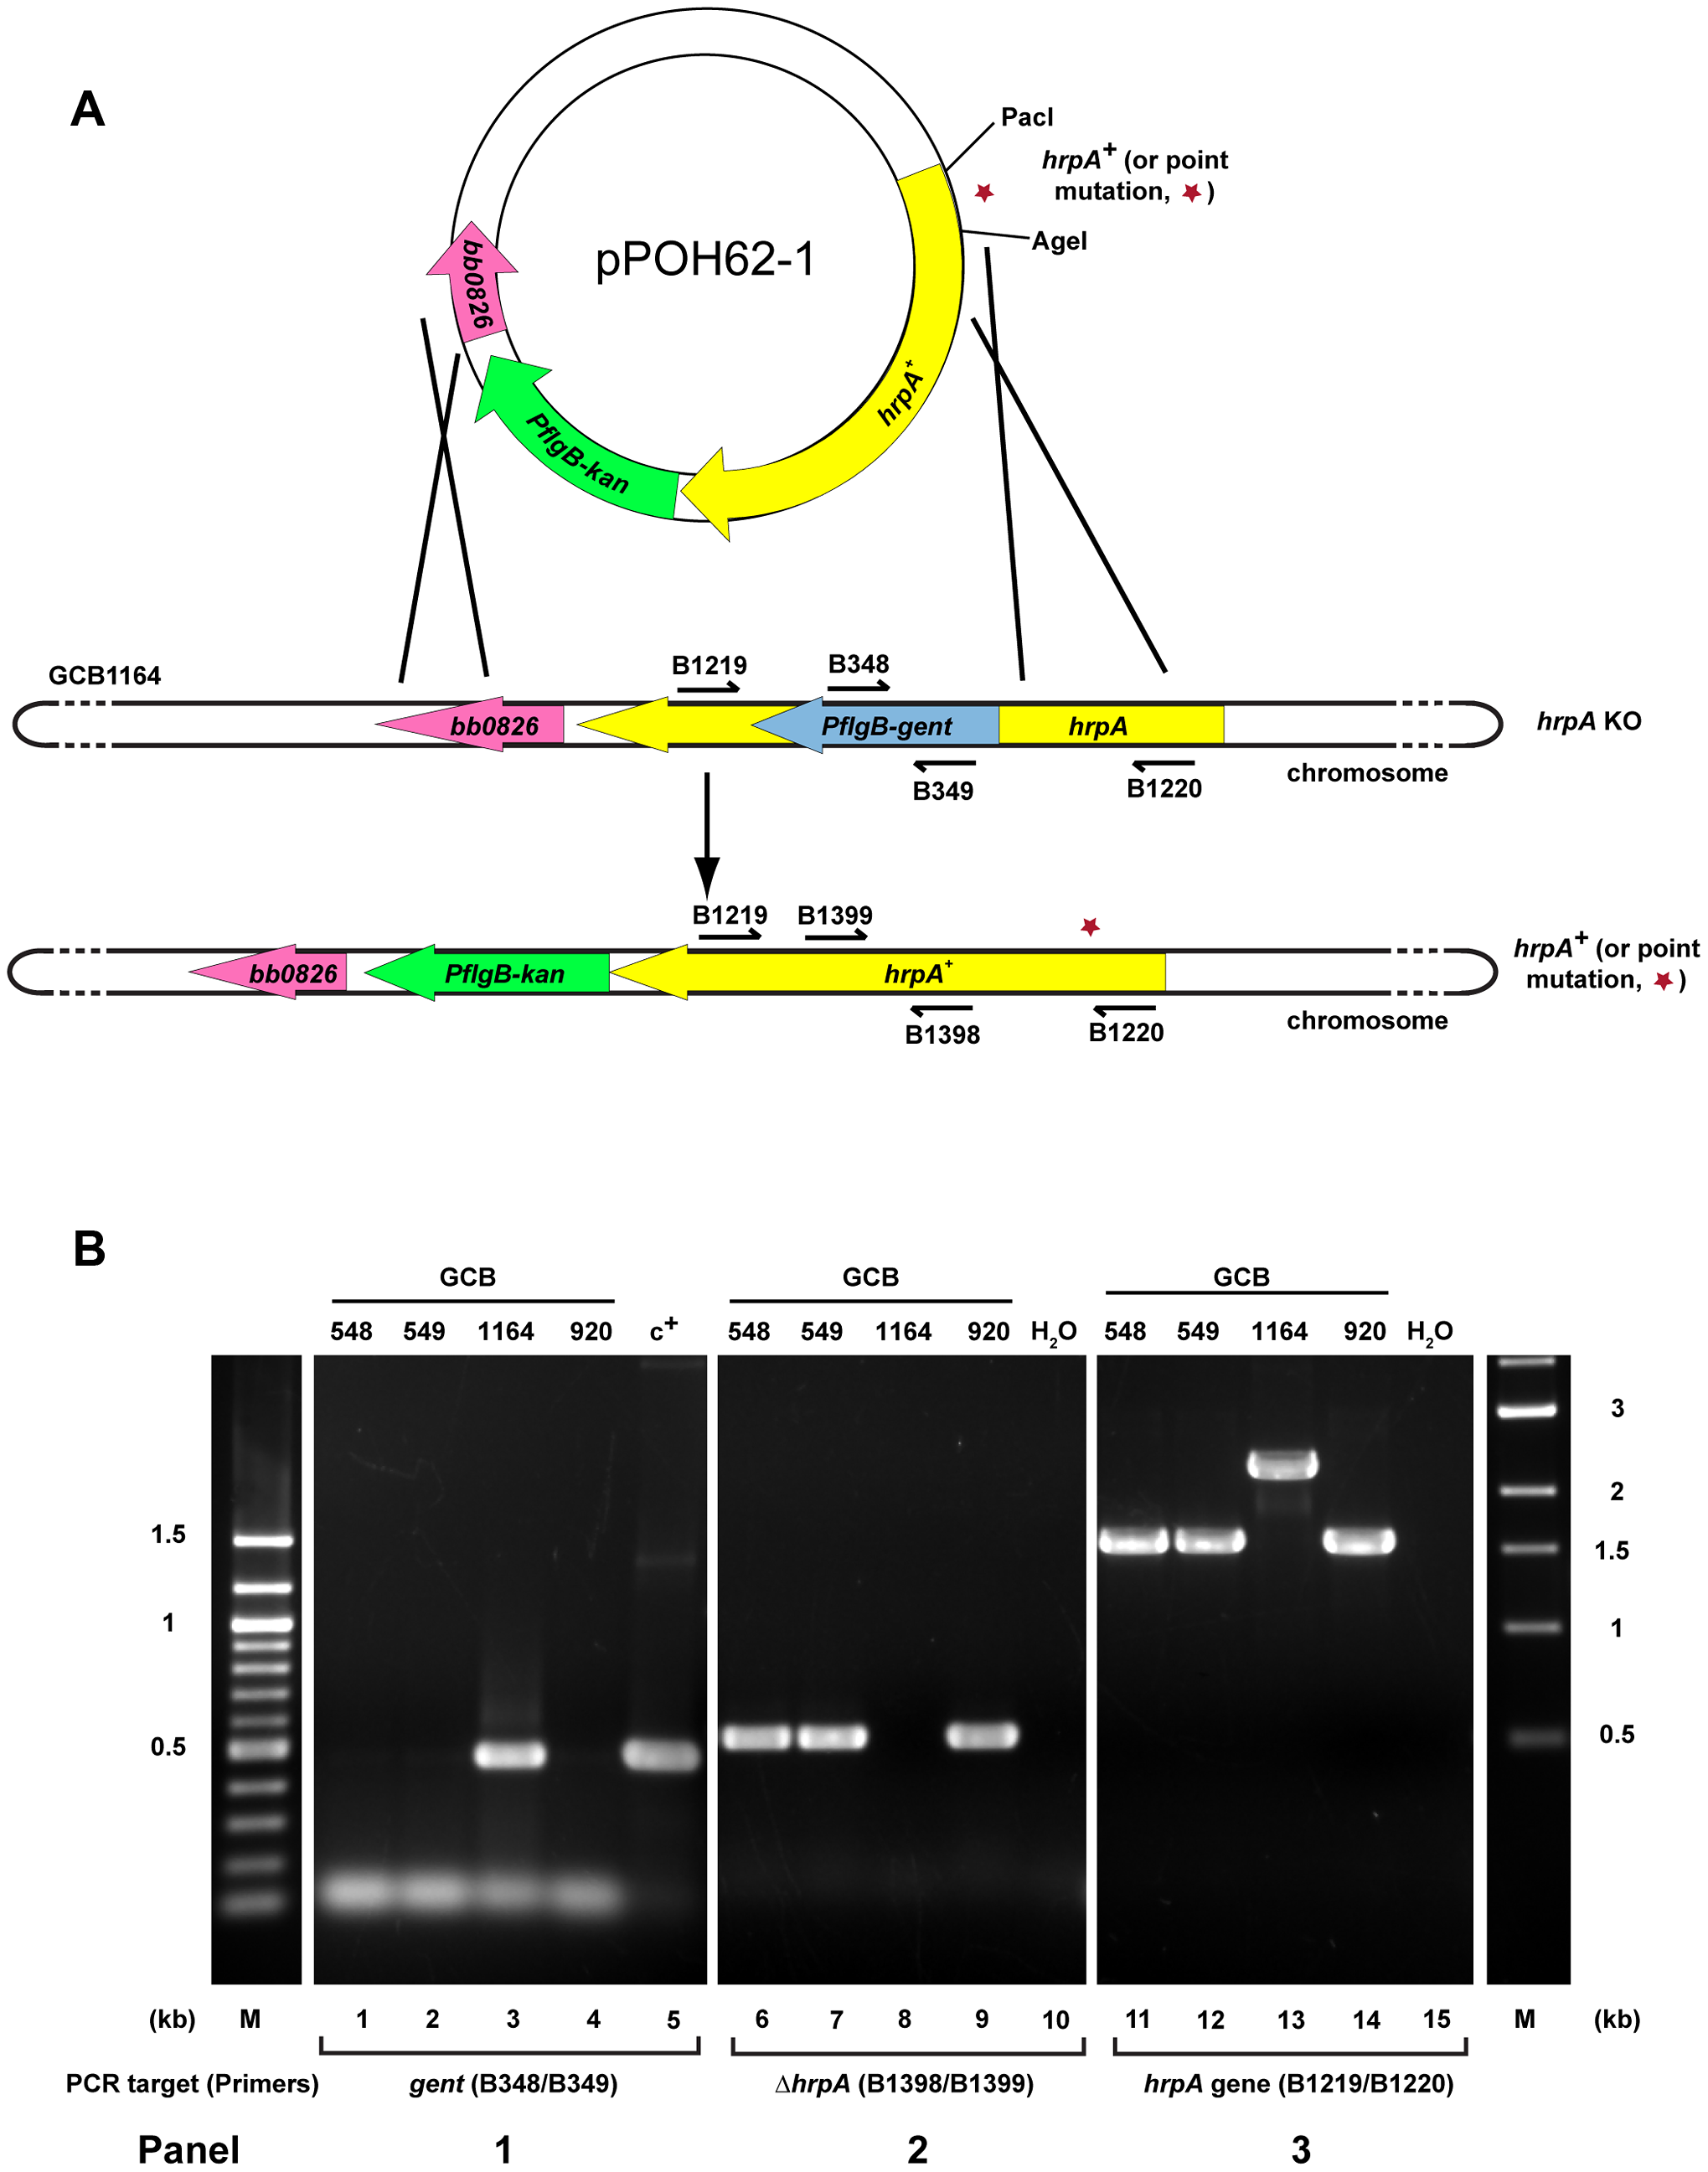 Strategy for complementation and insertion of point mutations in <i>B. burgdorferi hrpA</i>.